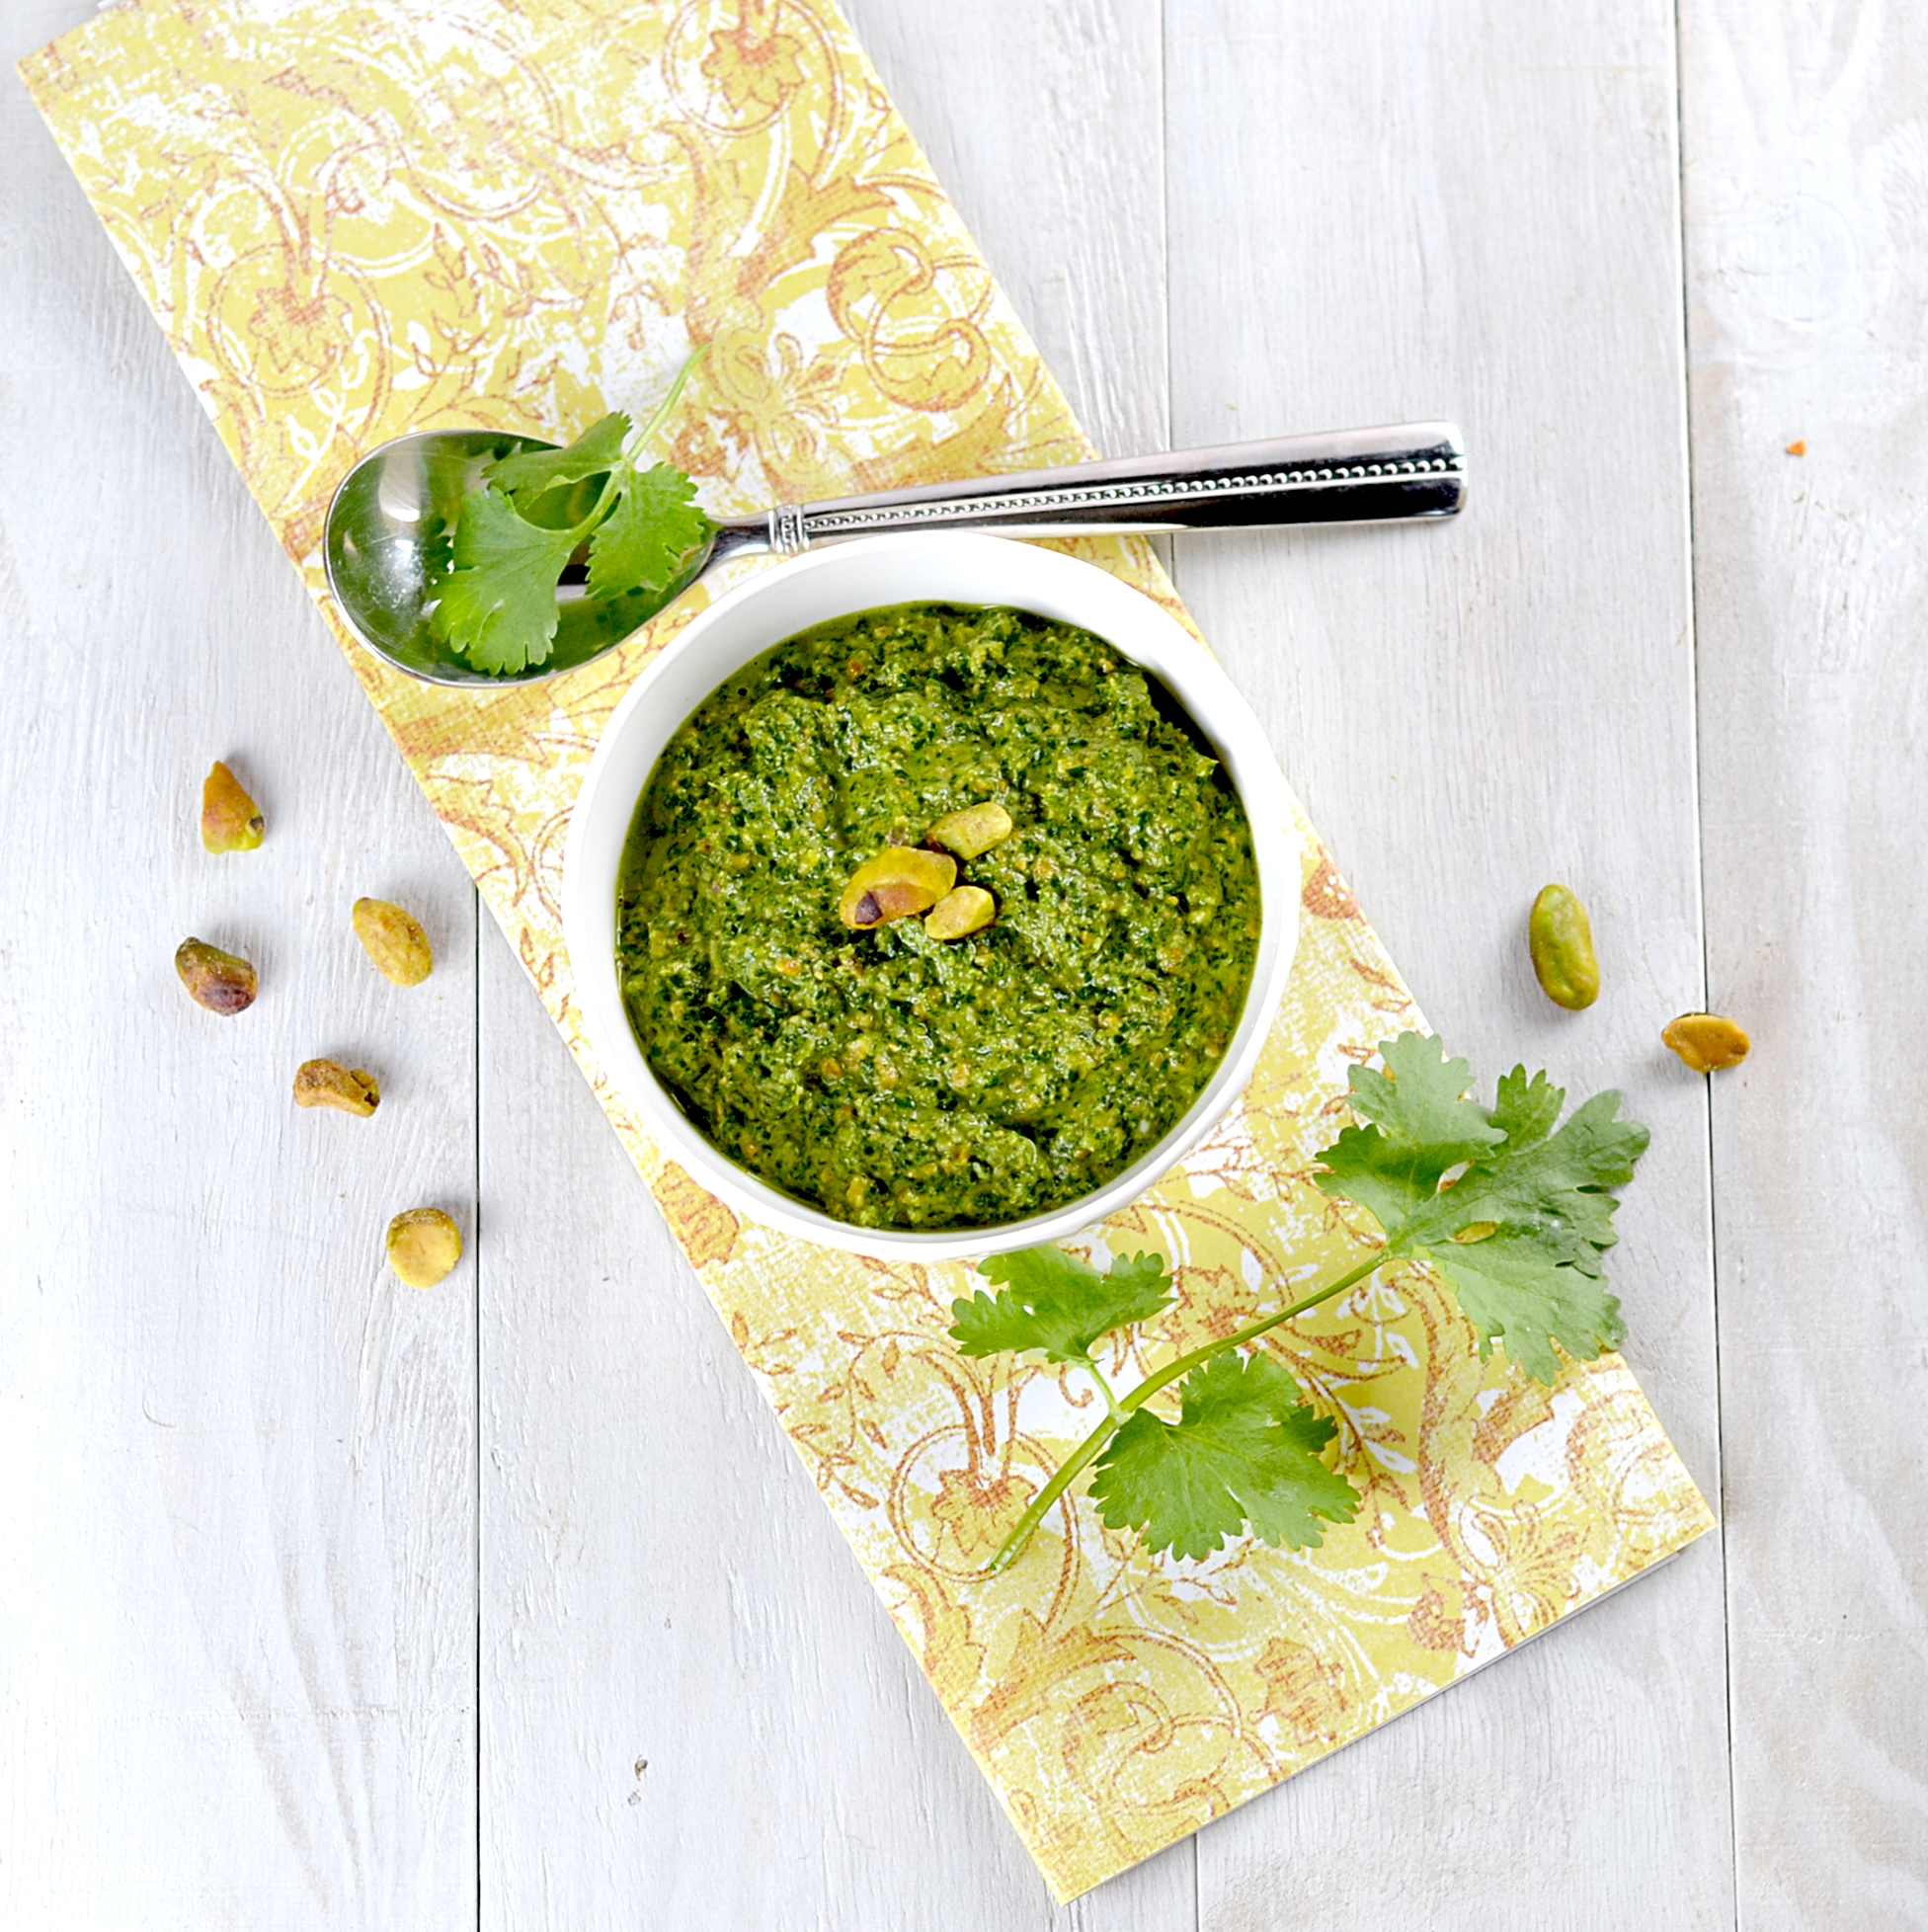 ... for Grilled Zucchini and Artichokes with Cilantro-Pistachio Pesto